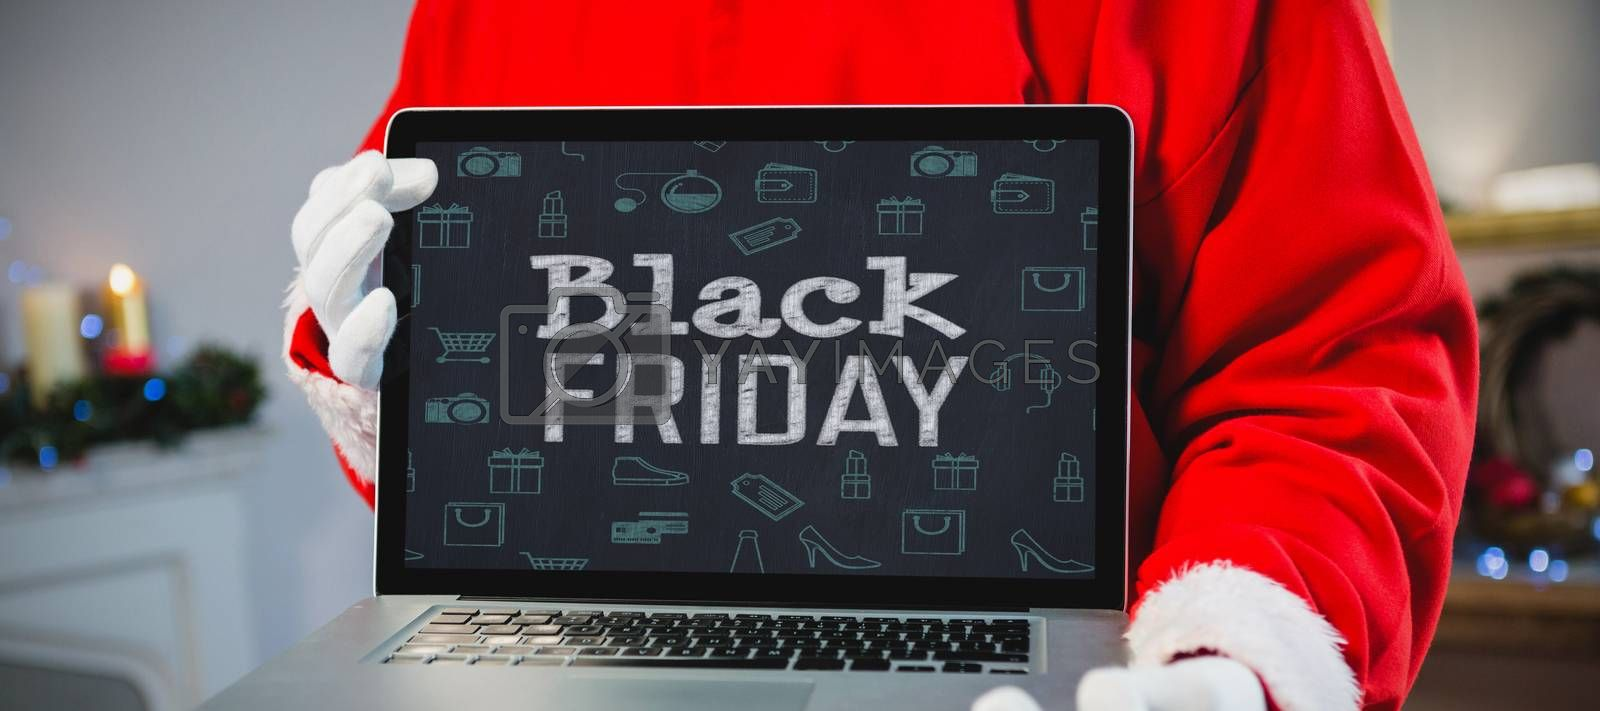 Black friday advert against santa claus holding a laptop